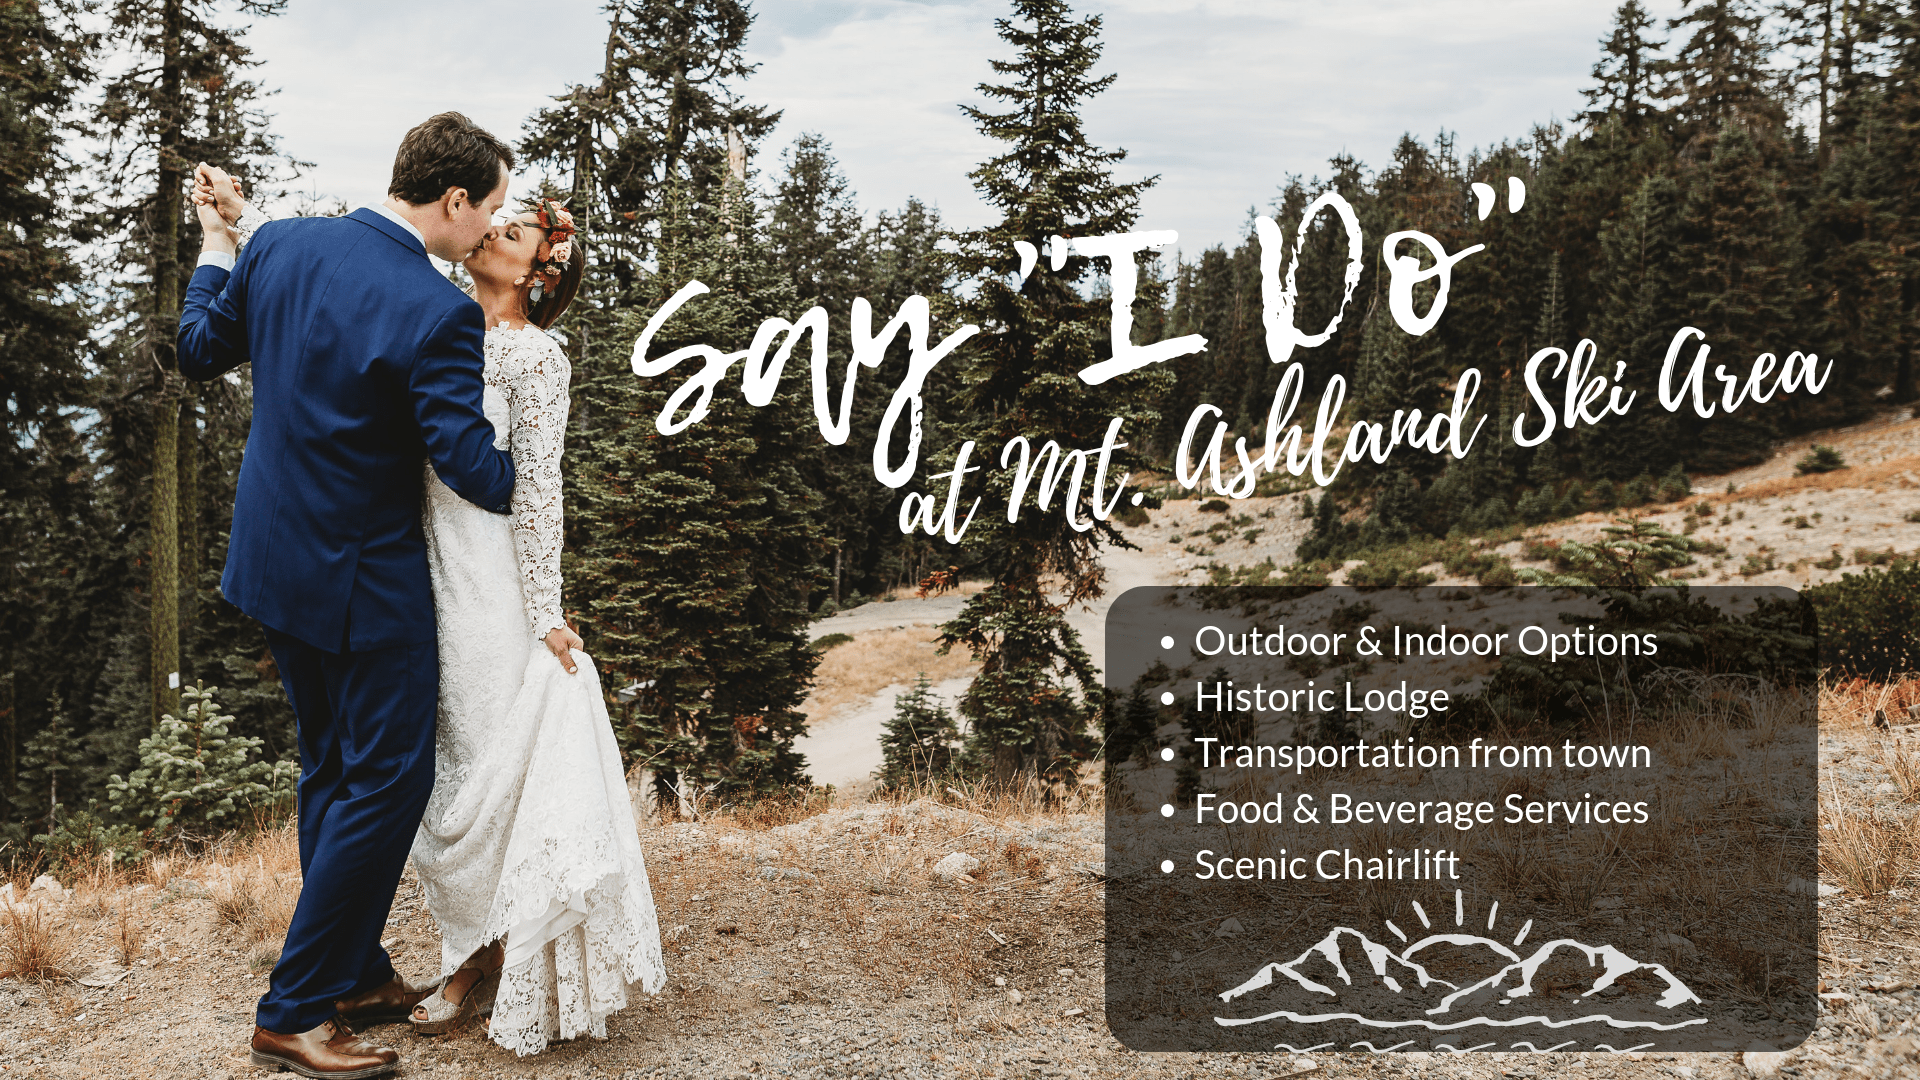 Mt. Ashland is a beautiful wedding venue or place to hold a special event.